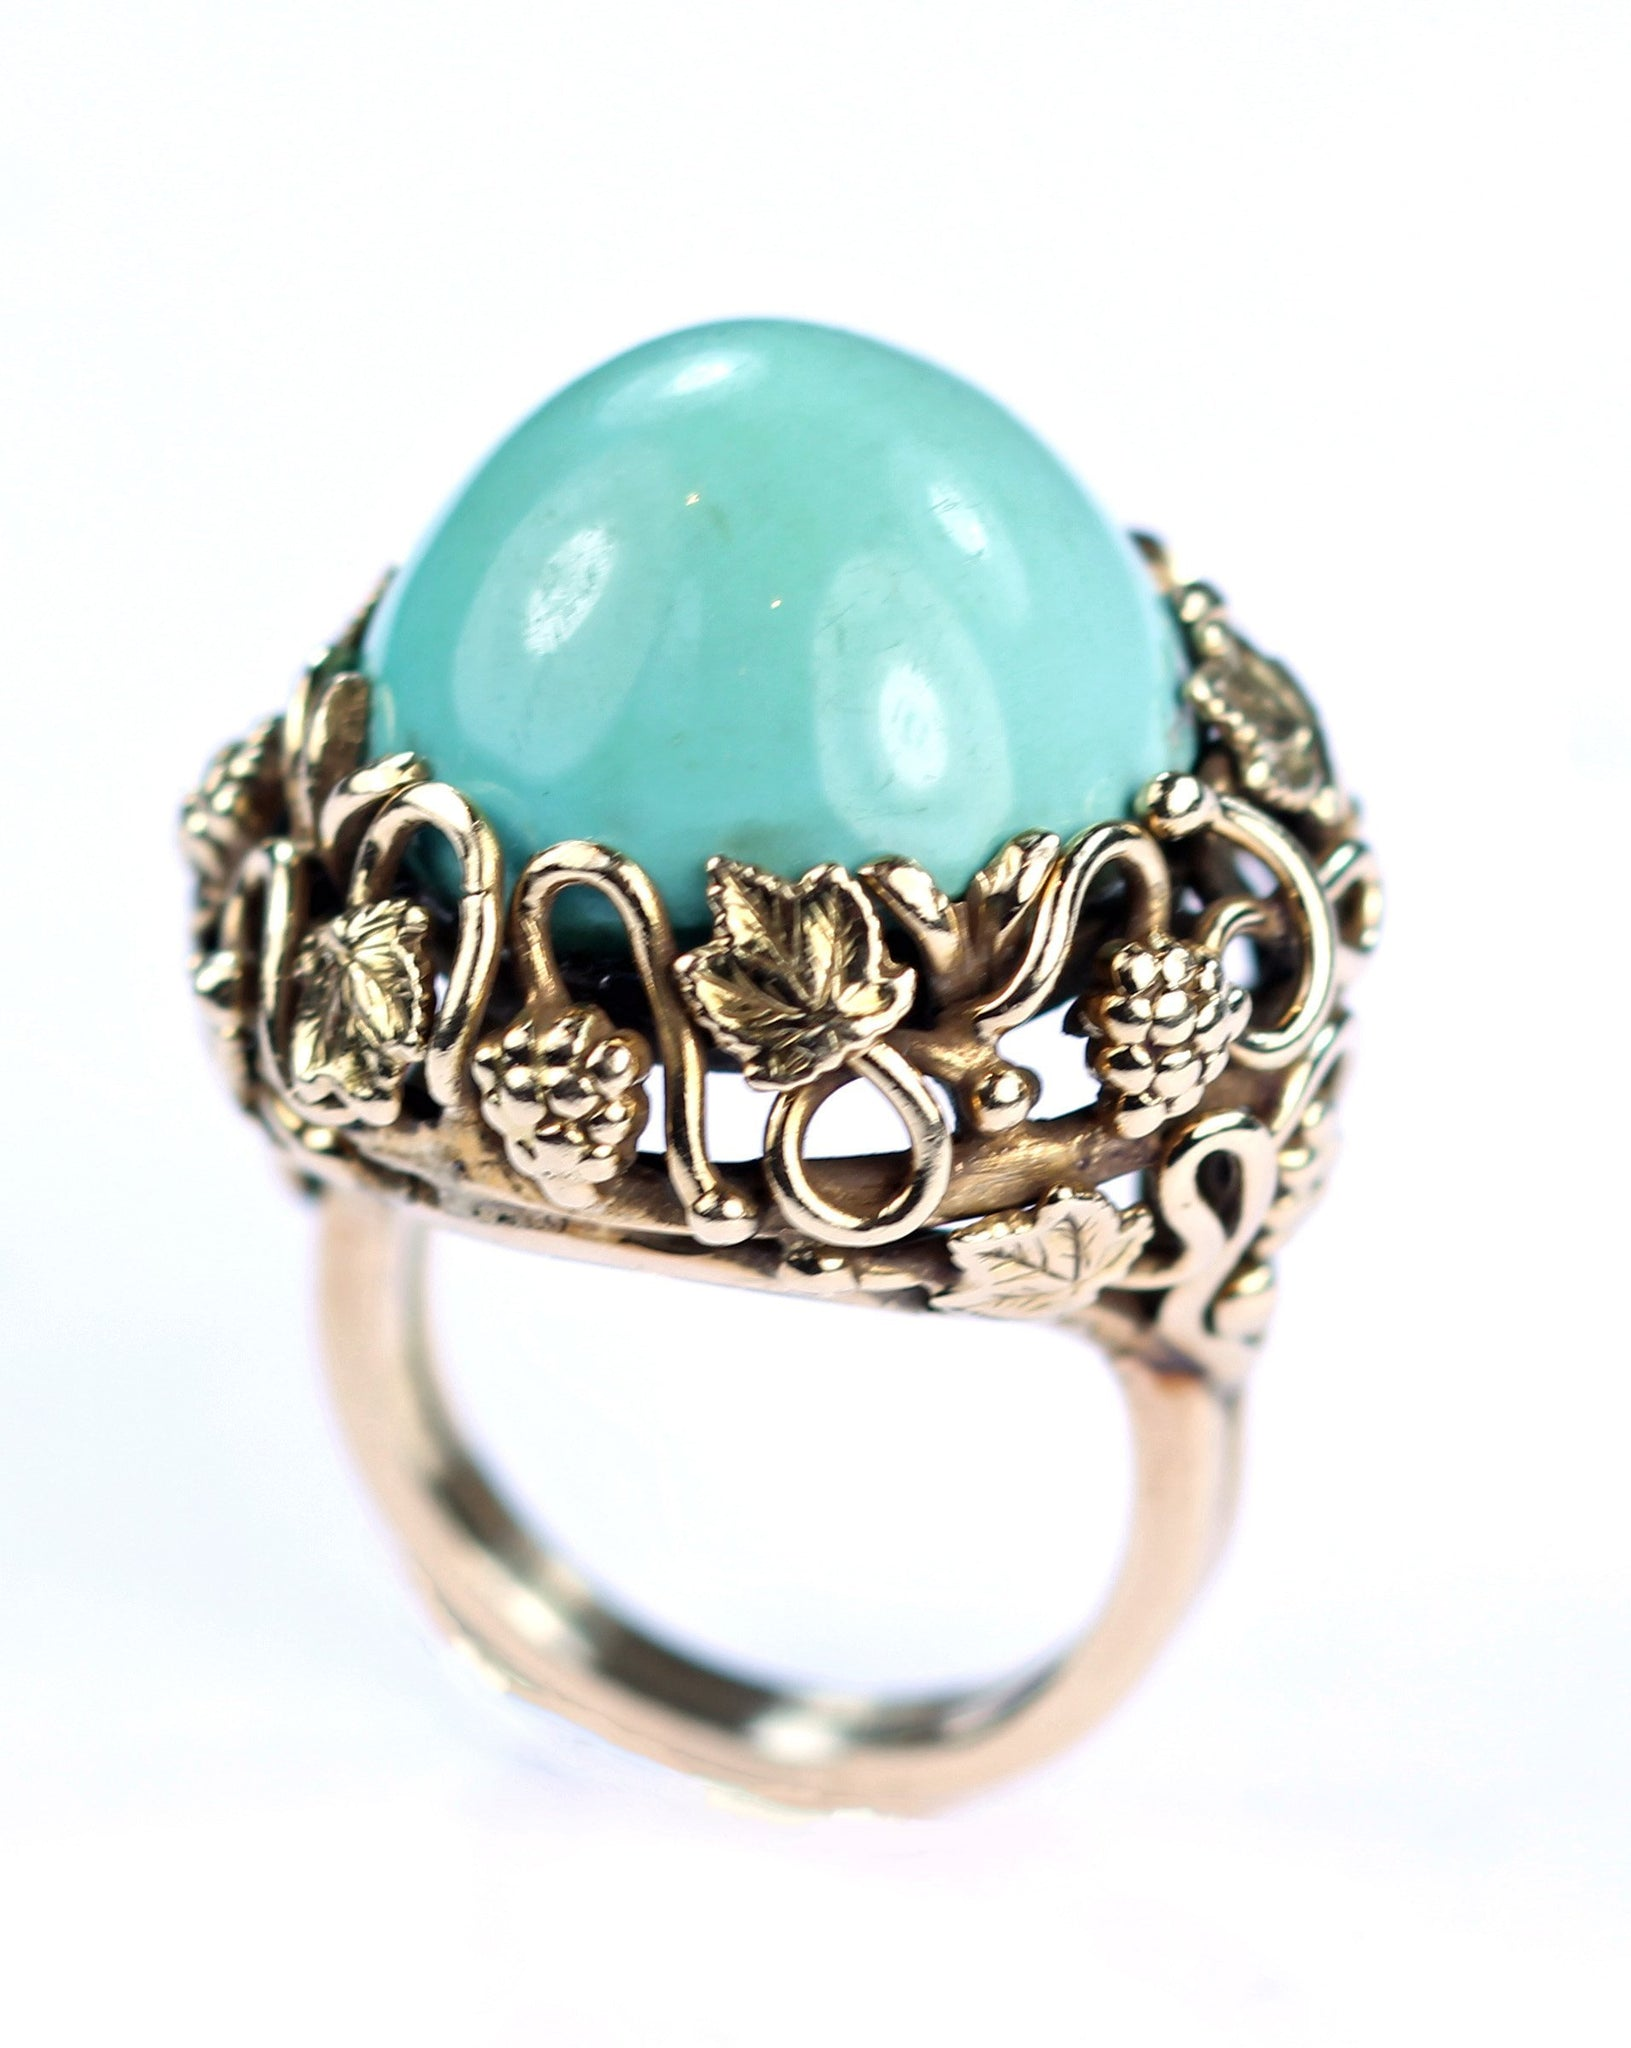 Vintage Turquoise Ring, SOLD